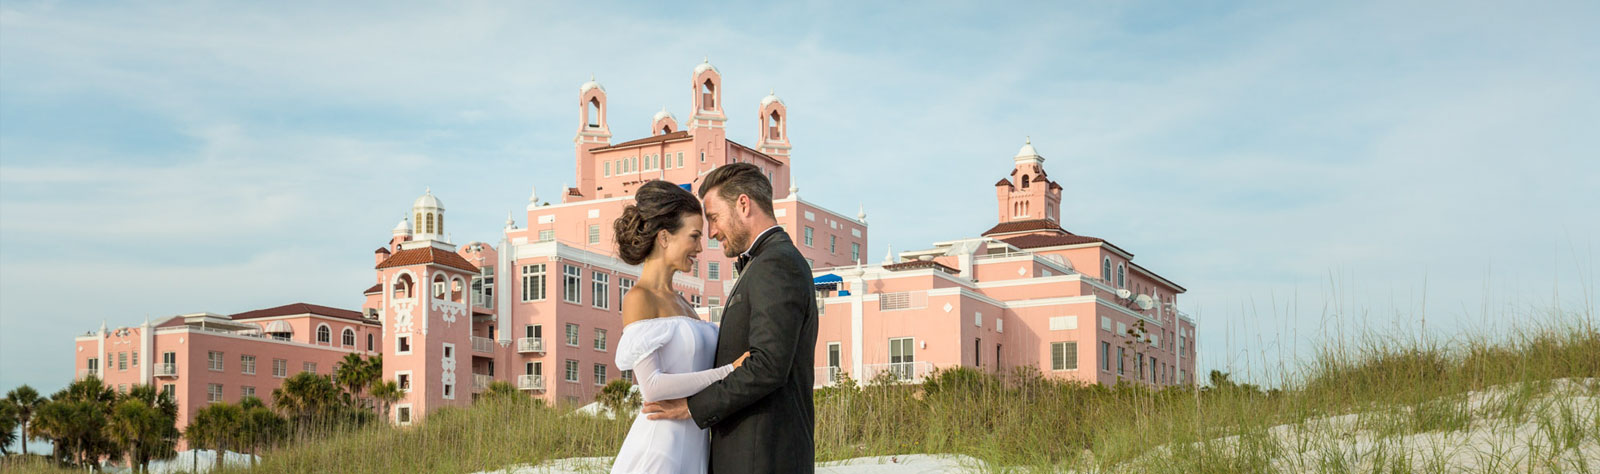 Weddings & Meetings in Florida Hotel